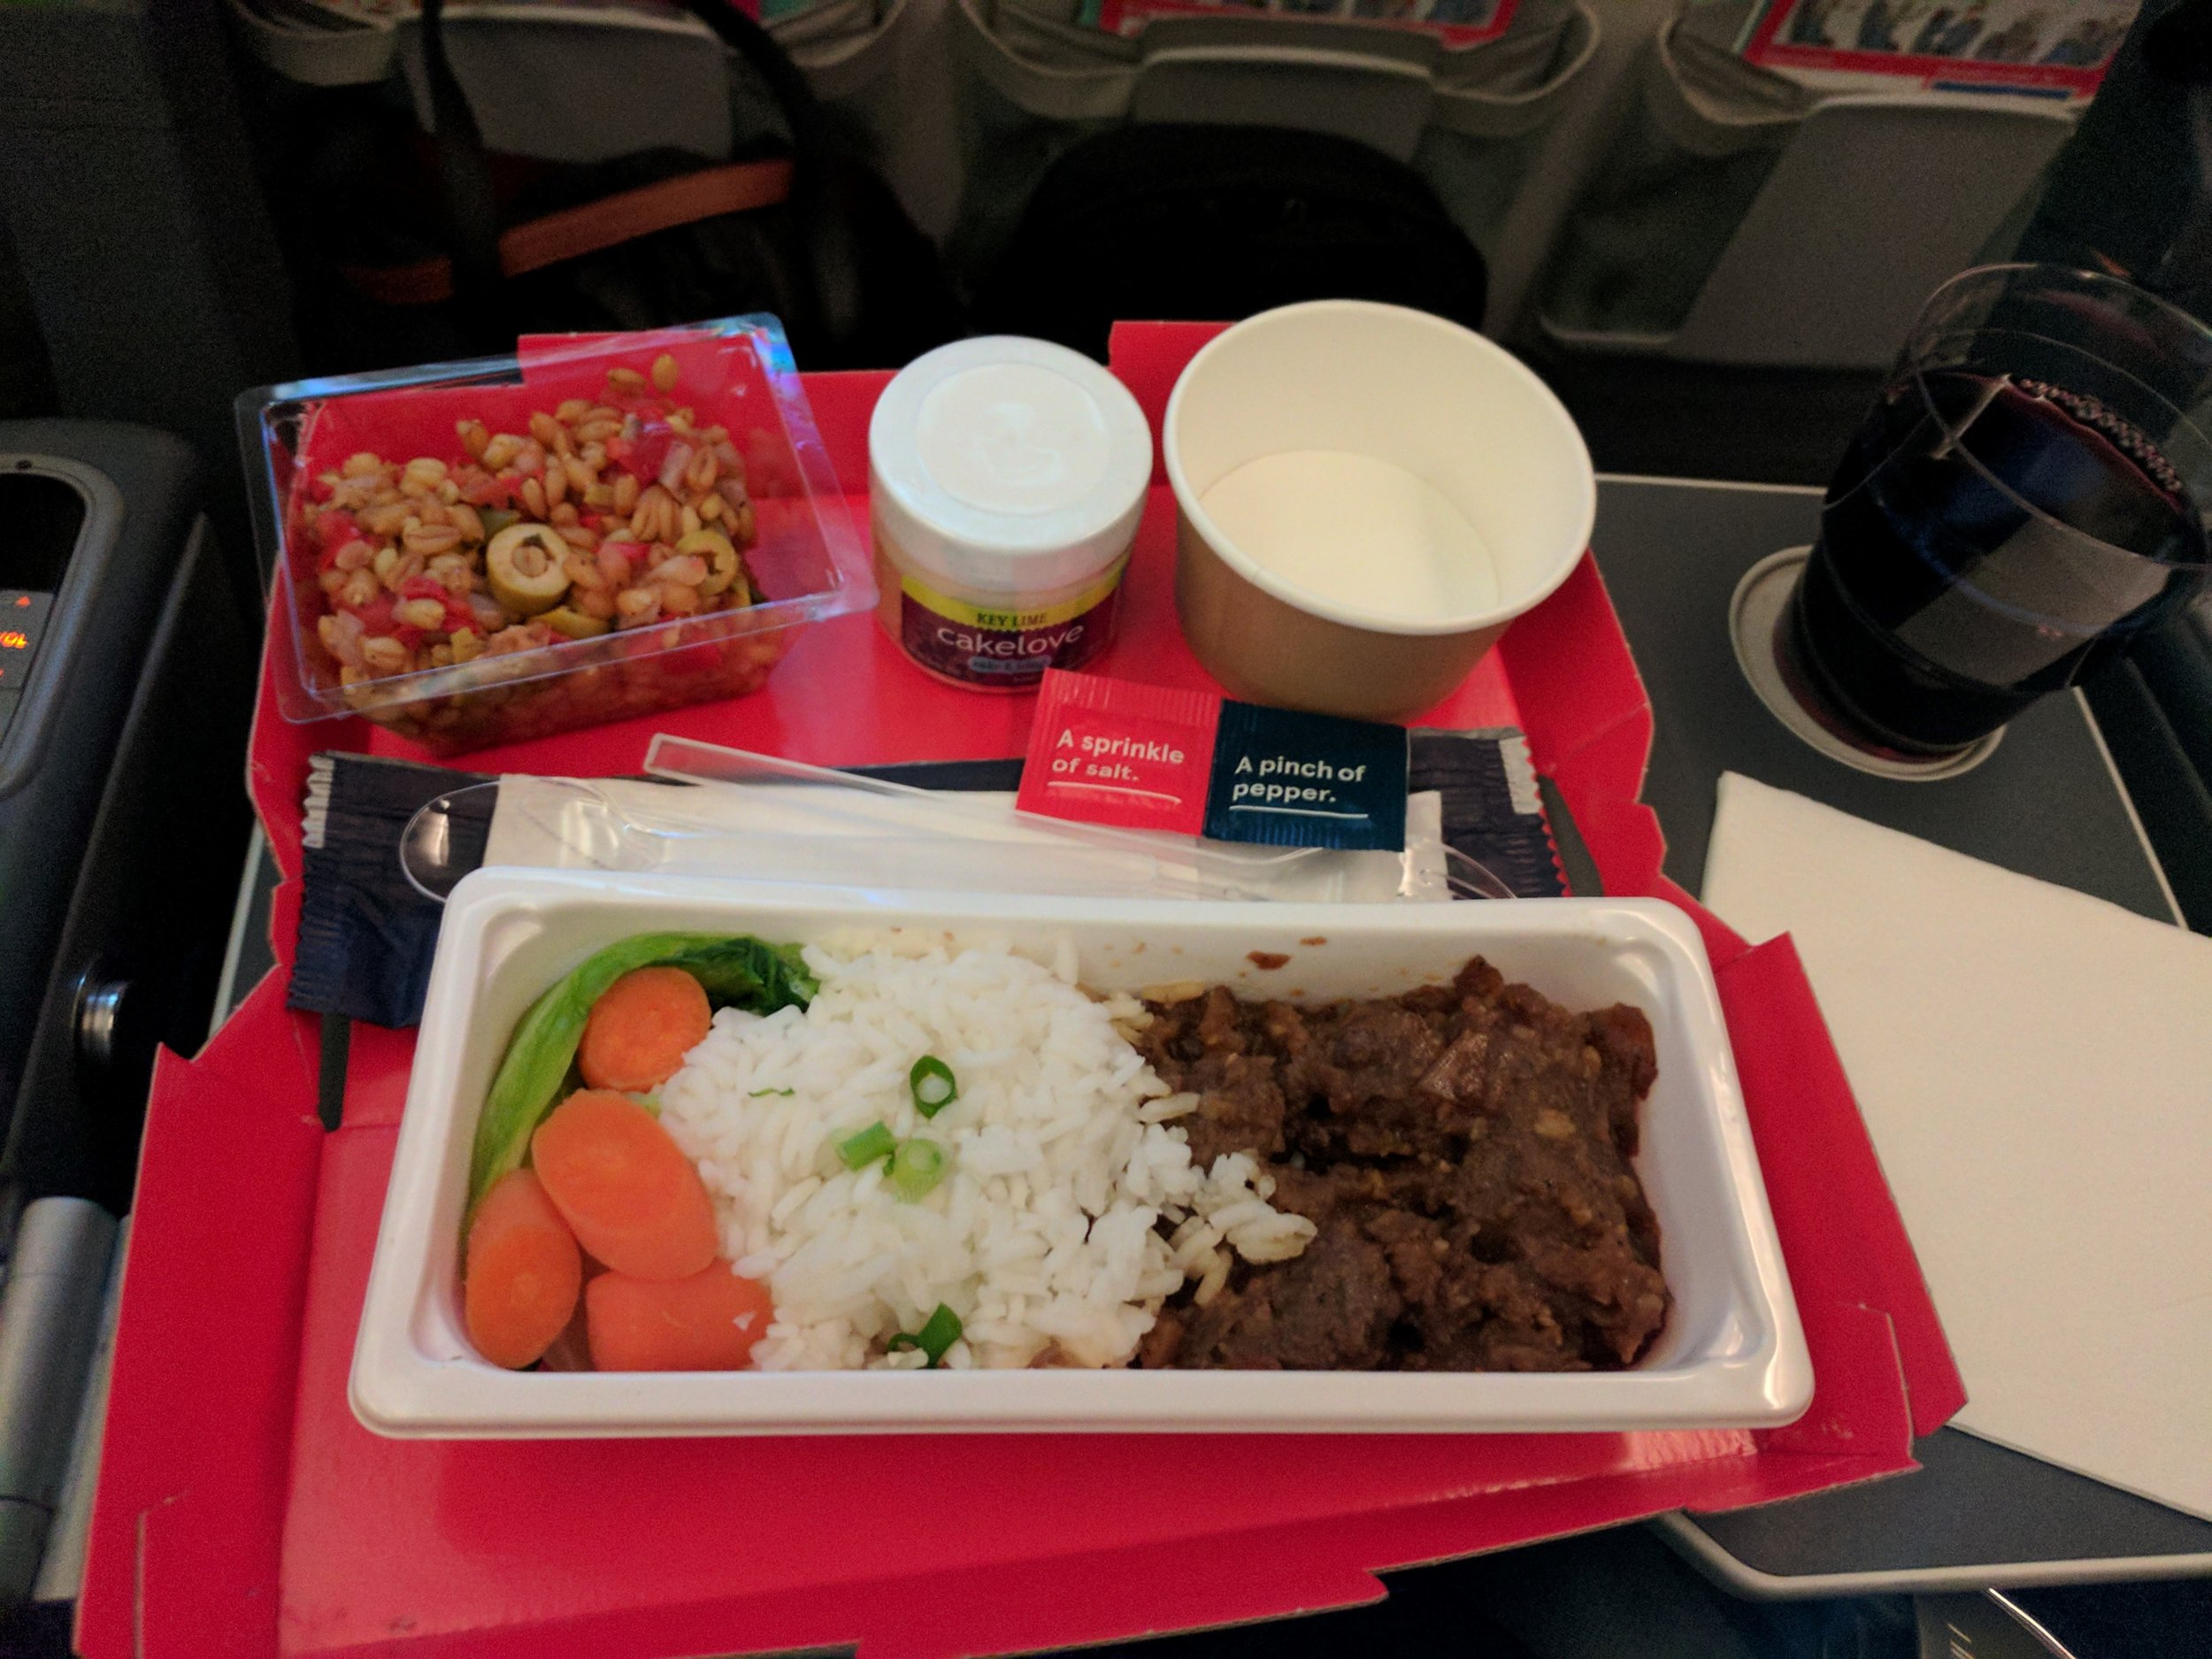 Included in our LowFare+. 3 courses and a glass of wine. Food was just meh,pretty typical of most coach-level airline offerings